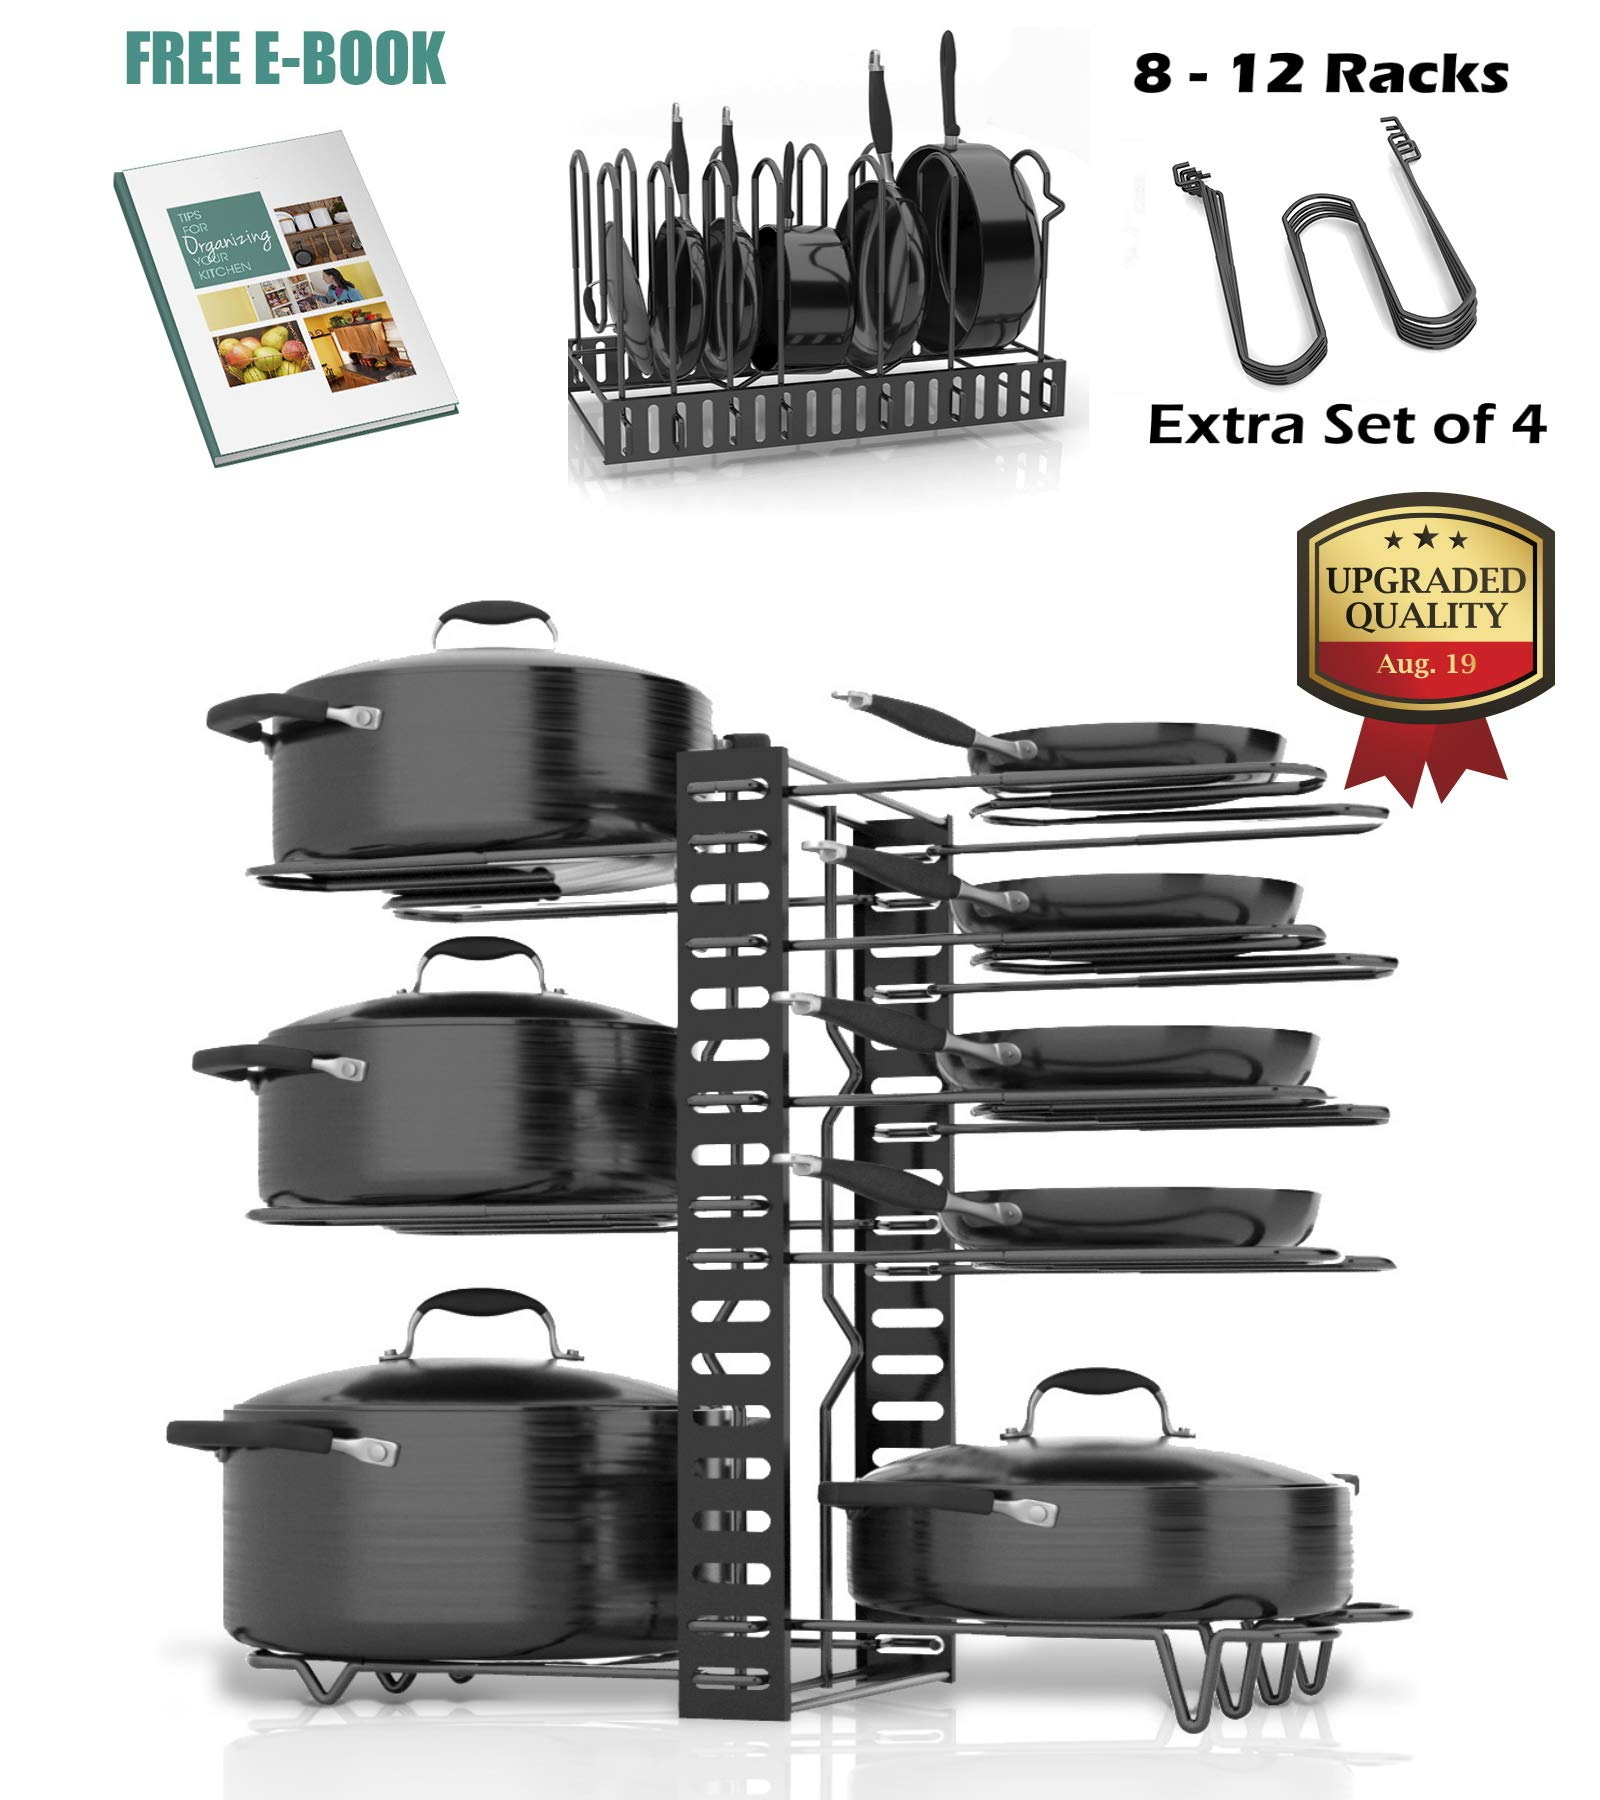 SKATCO Pots and Pans Organizer - Metal Pan Organizer Rack - Pantry & Kitchen Cabinet Organizer - Heavy Duty Lids, Dishes, Pot and Pan Organizer - Horizontal & Vertical Pot Rack with 3 Use Methods by SKATCO